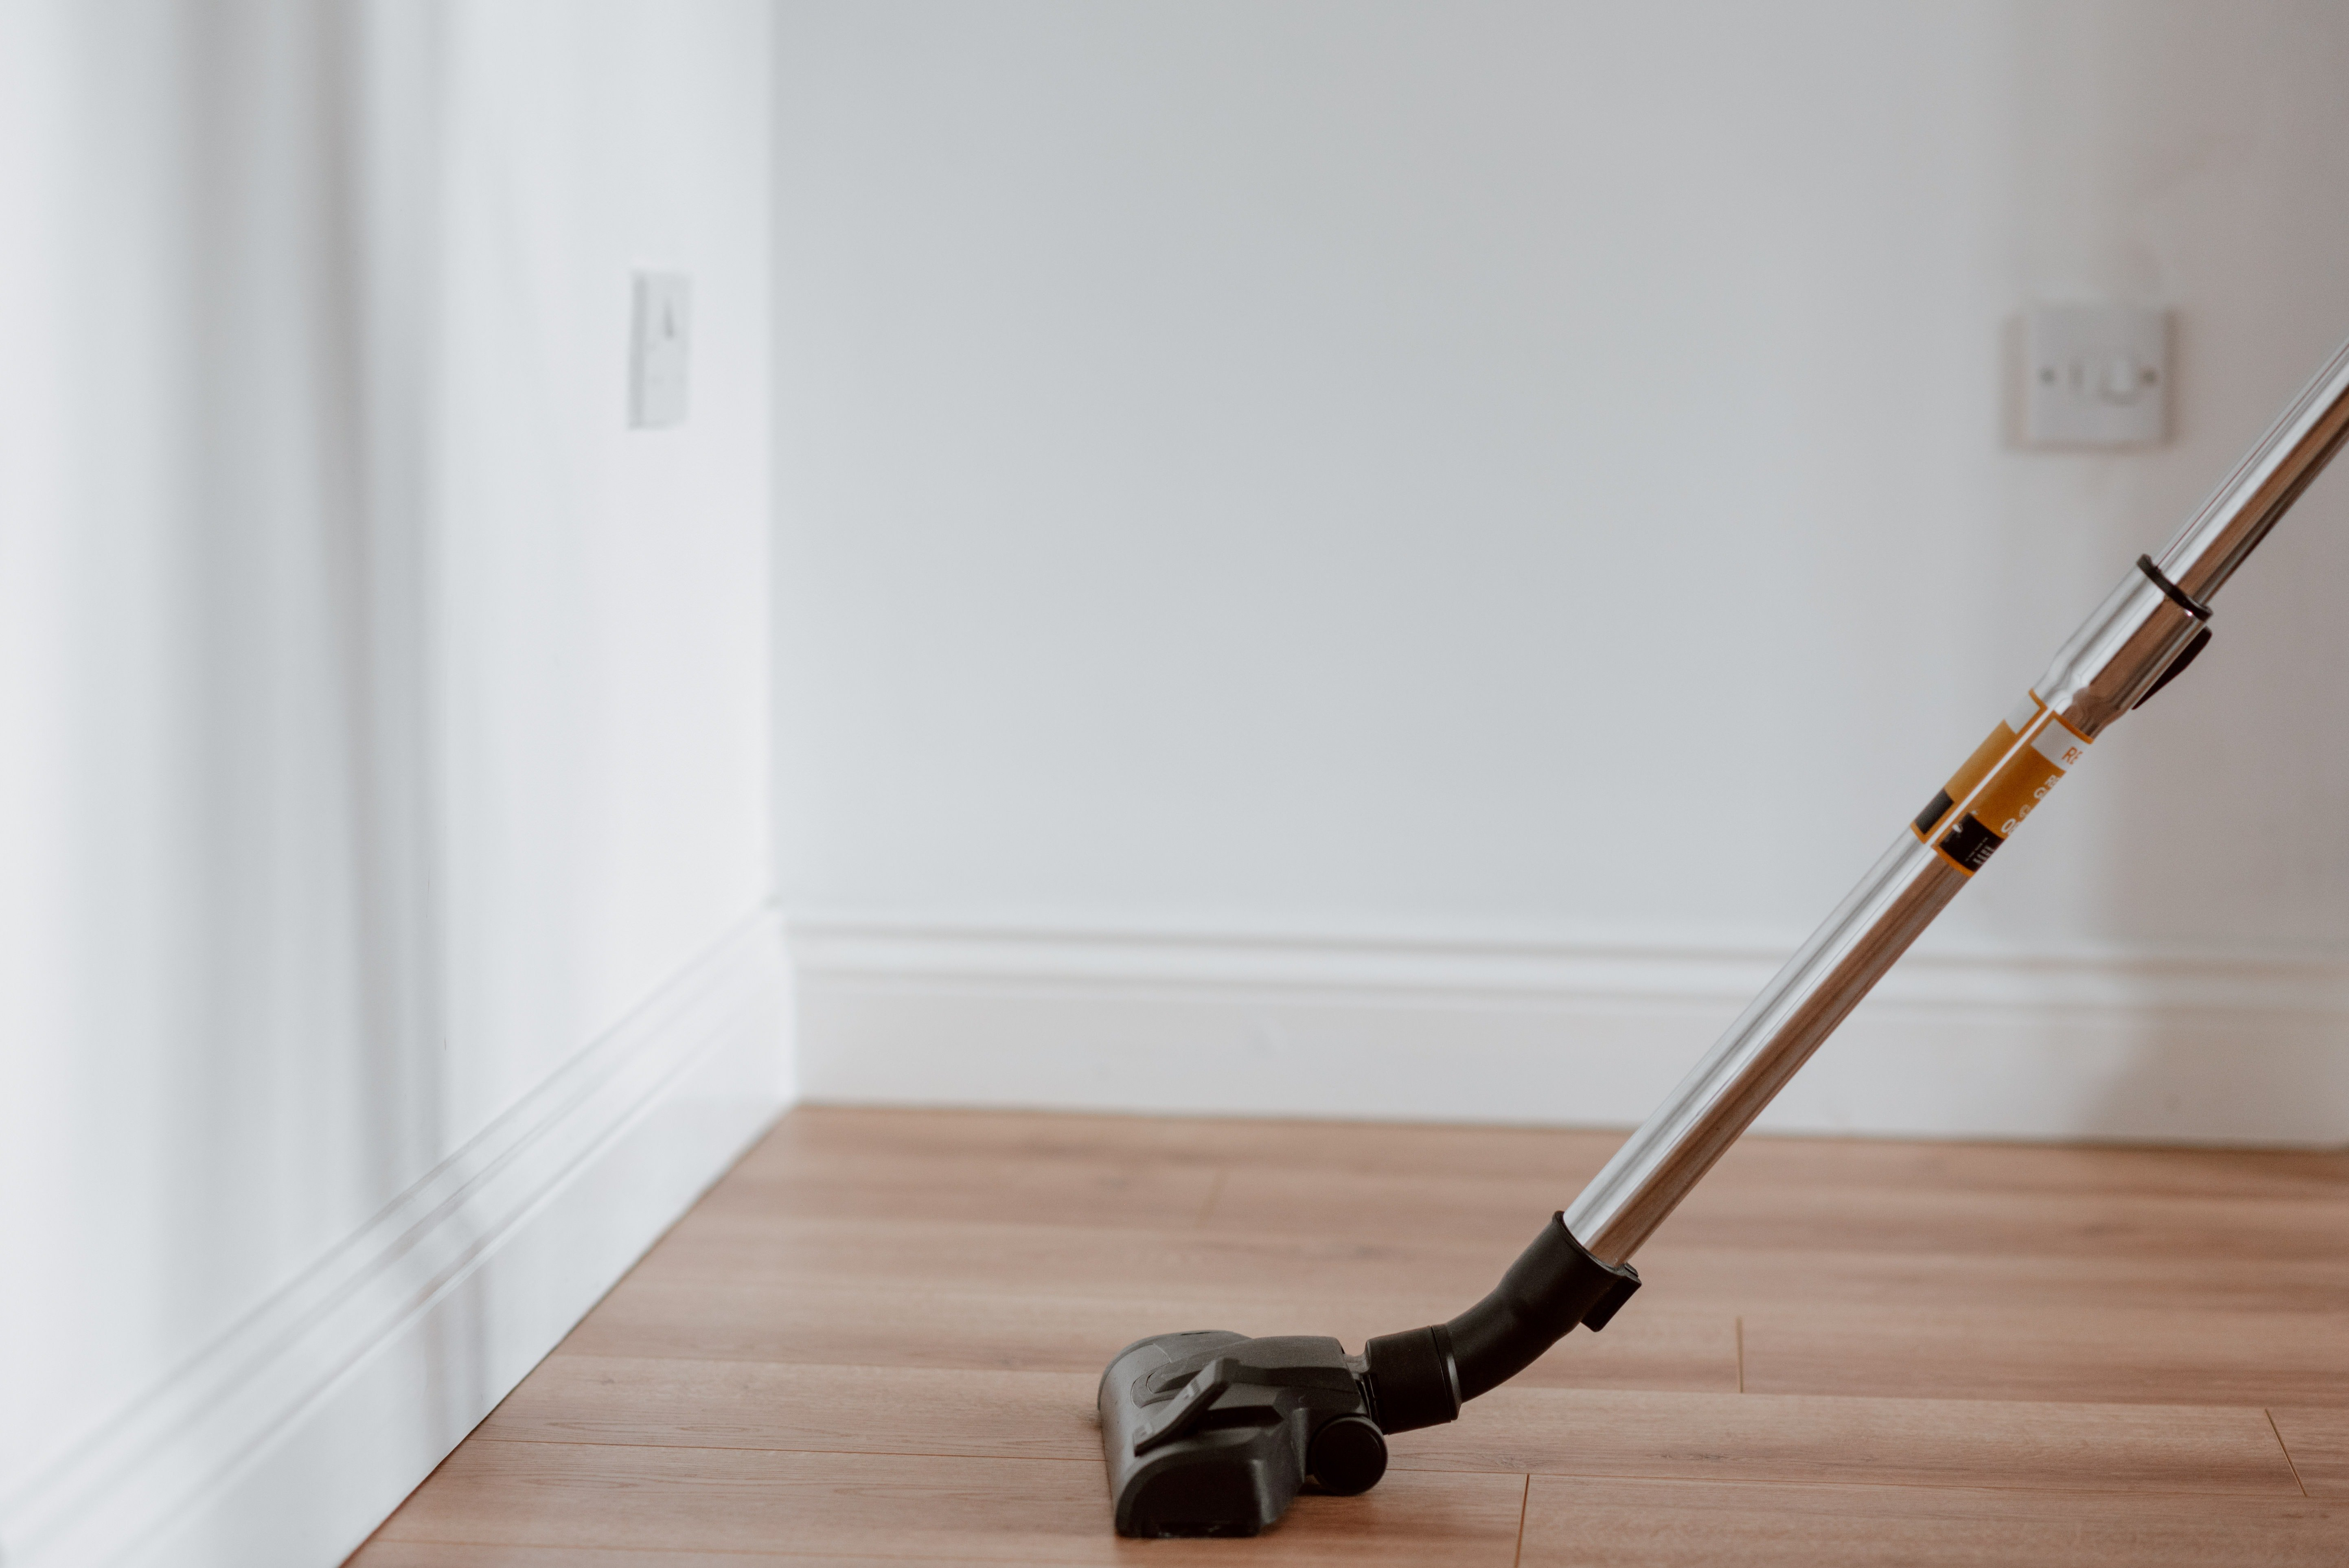 A vacuum cleaner on a wooden floor. | Photo: Pexels